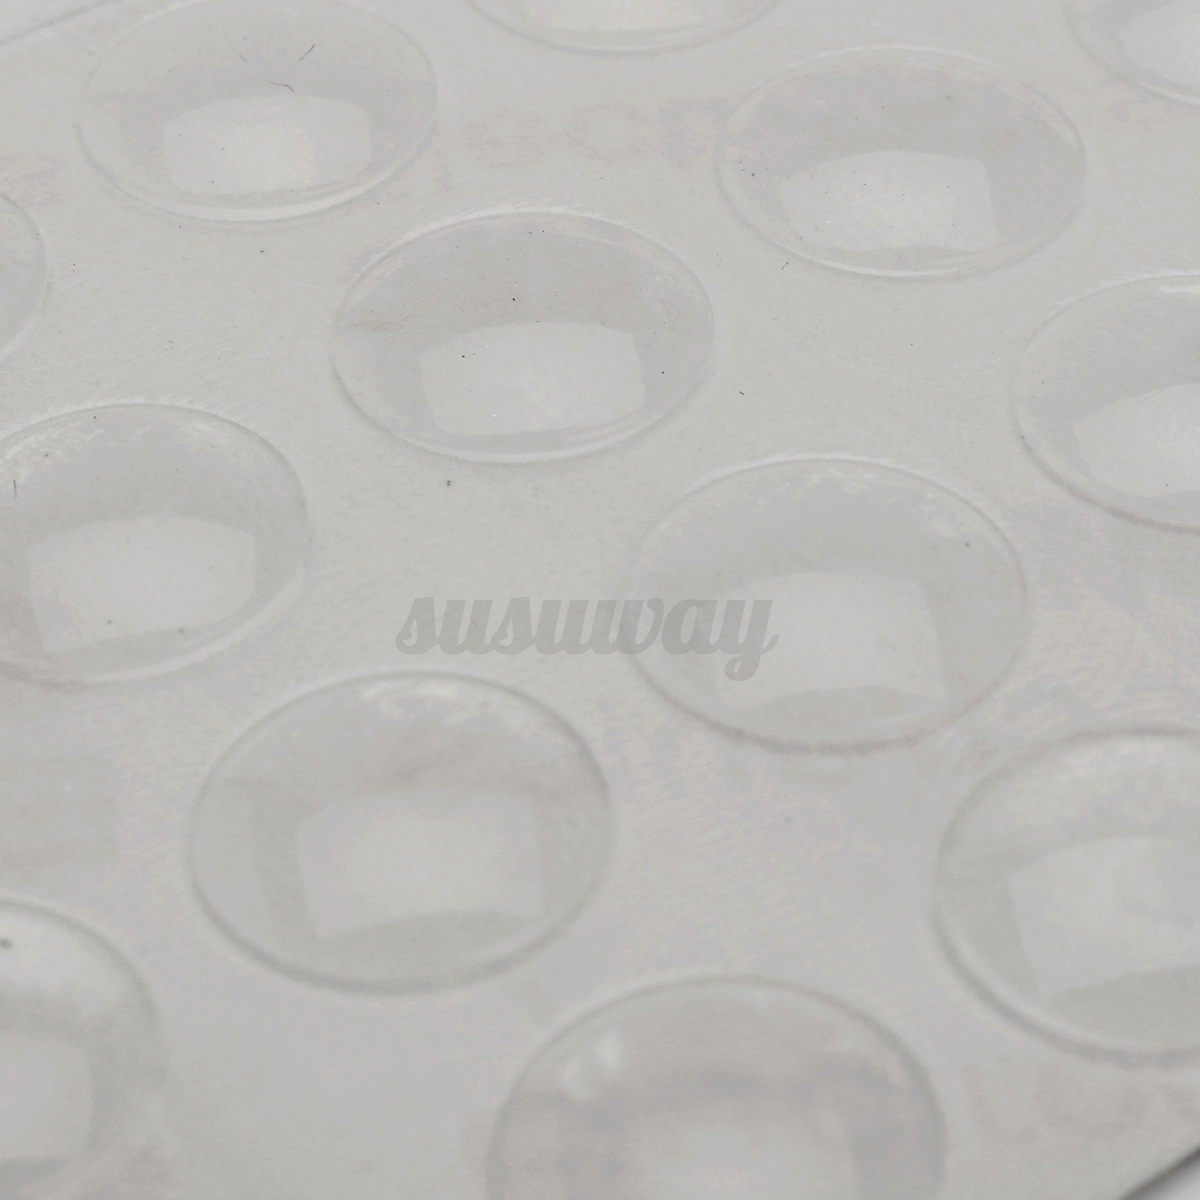 400x Clear Self Adhesive Rubber Feet Semicircle Bumper